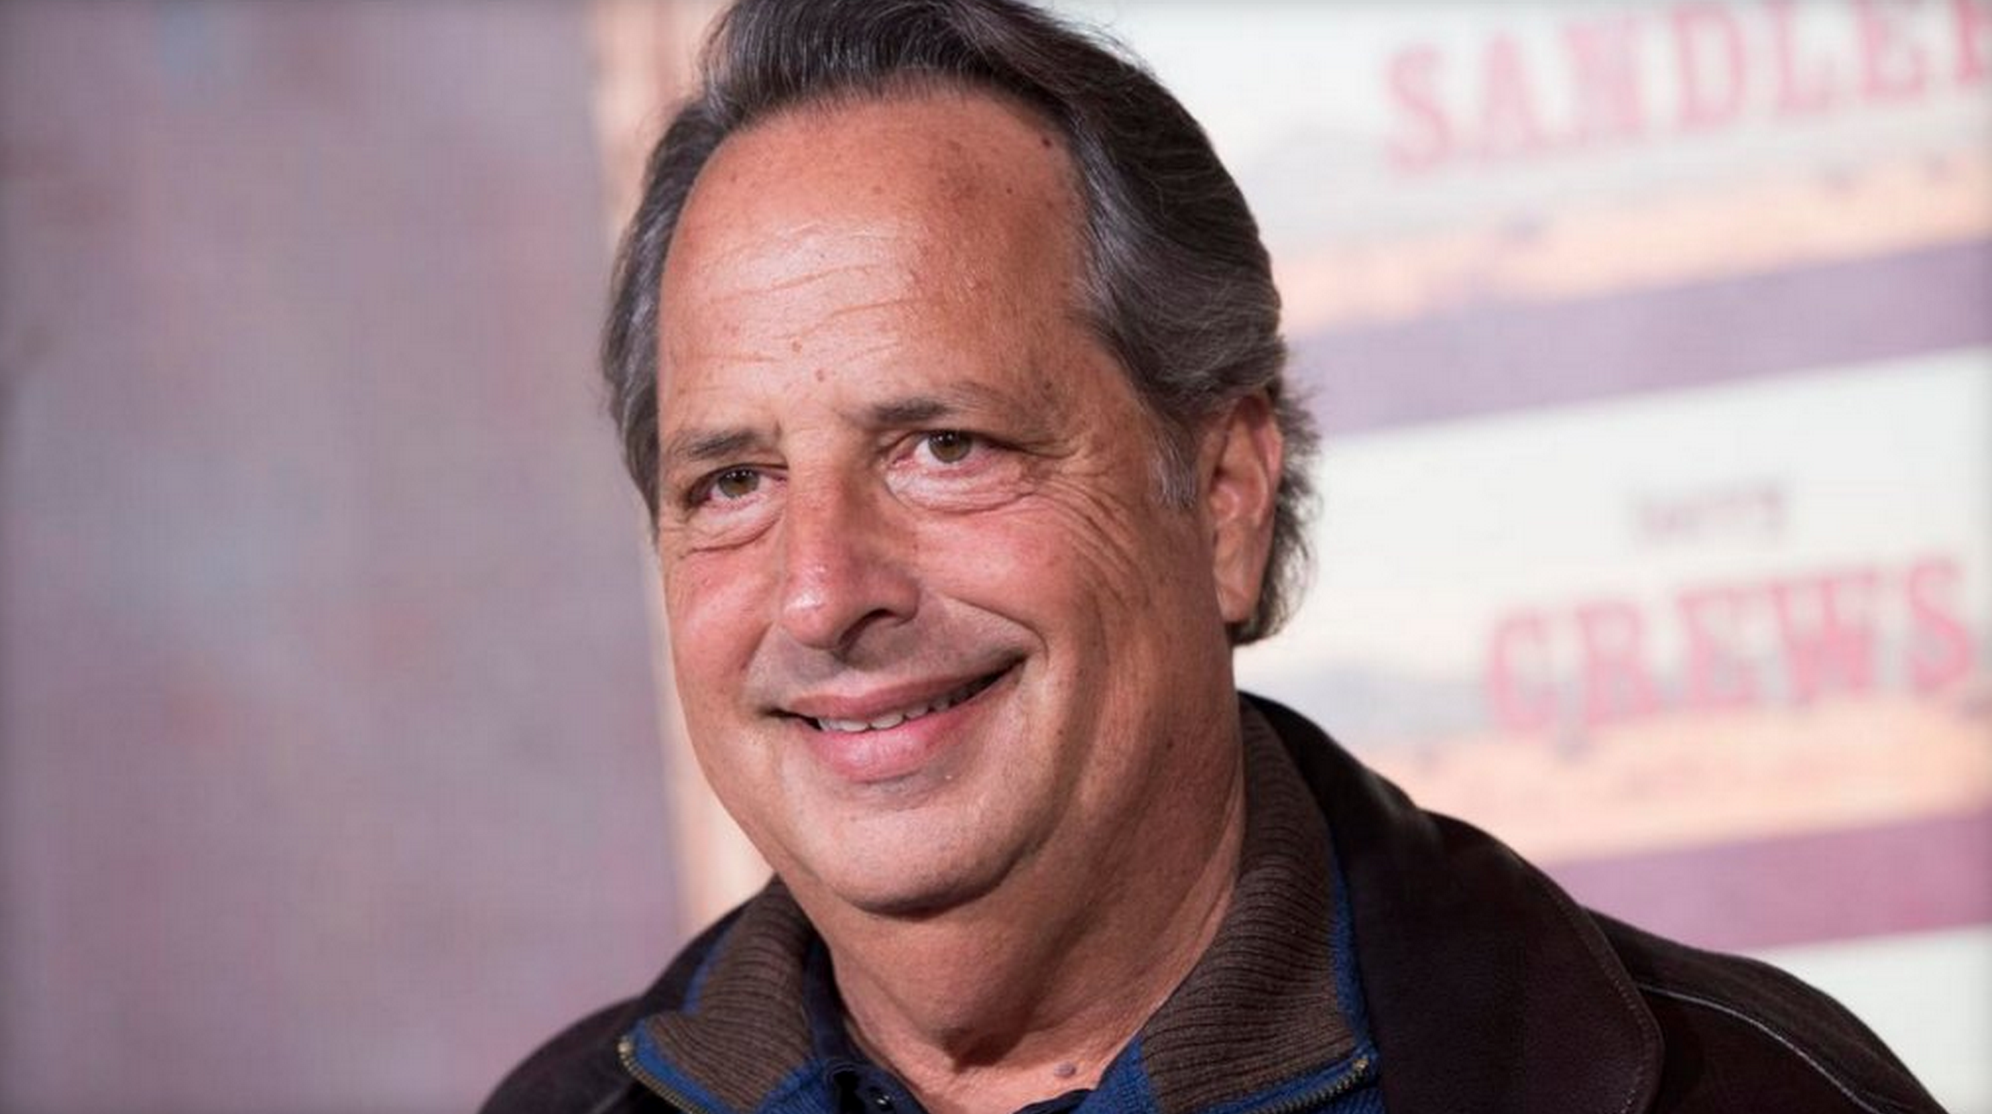 HOAX ALERT: Jon Lovitz dating story is not true